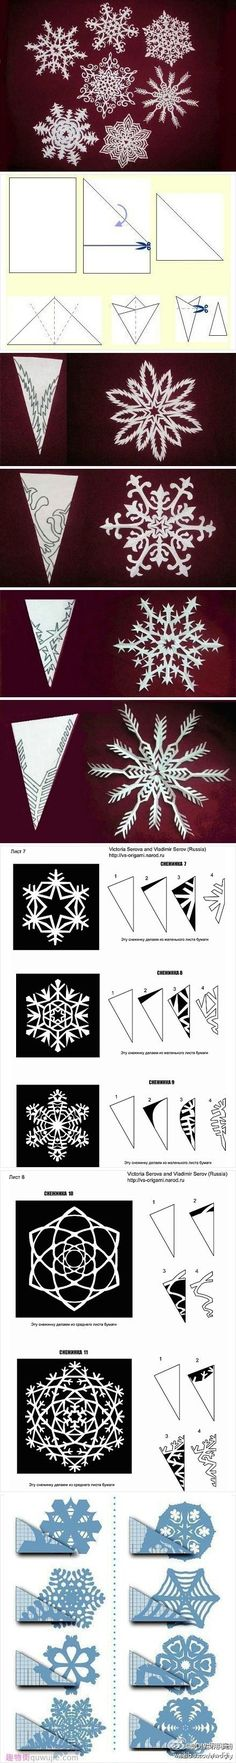 Ideas For Paper Art Diy Kirigami Decoration Diy Paper, Paper Art, Paper Crafts, Origami Paper, Diy Origami, Paper Toys, Holiday Crafts, Holiday Fun, Diy And Crafts